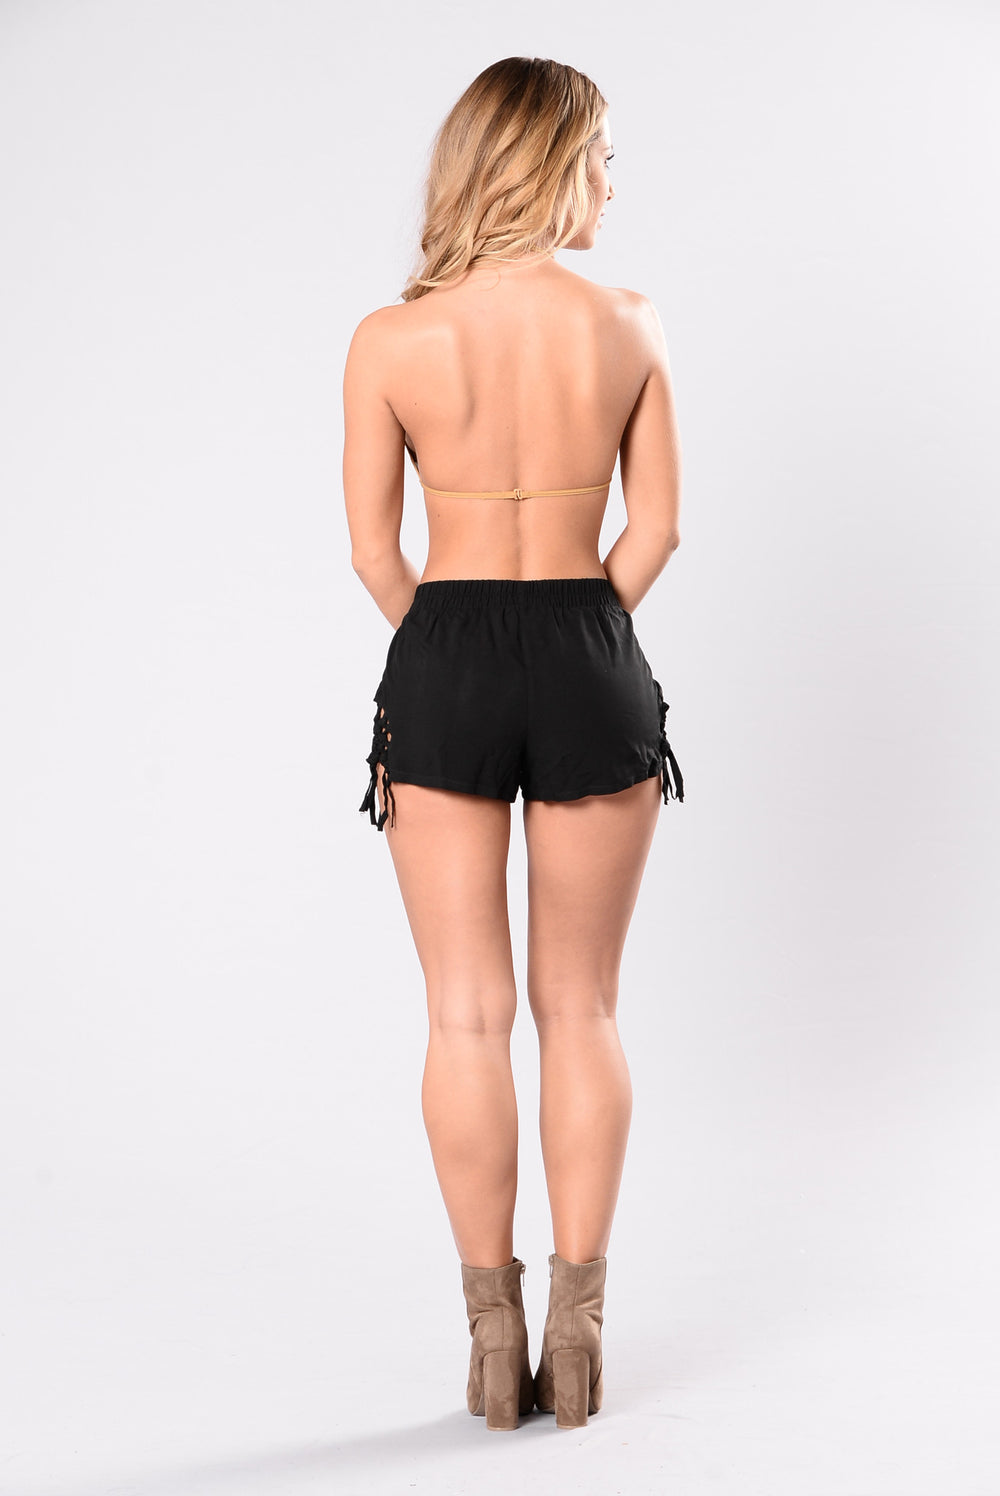 Just A Little Side Shorts - Black